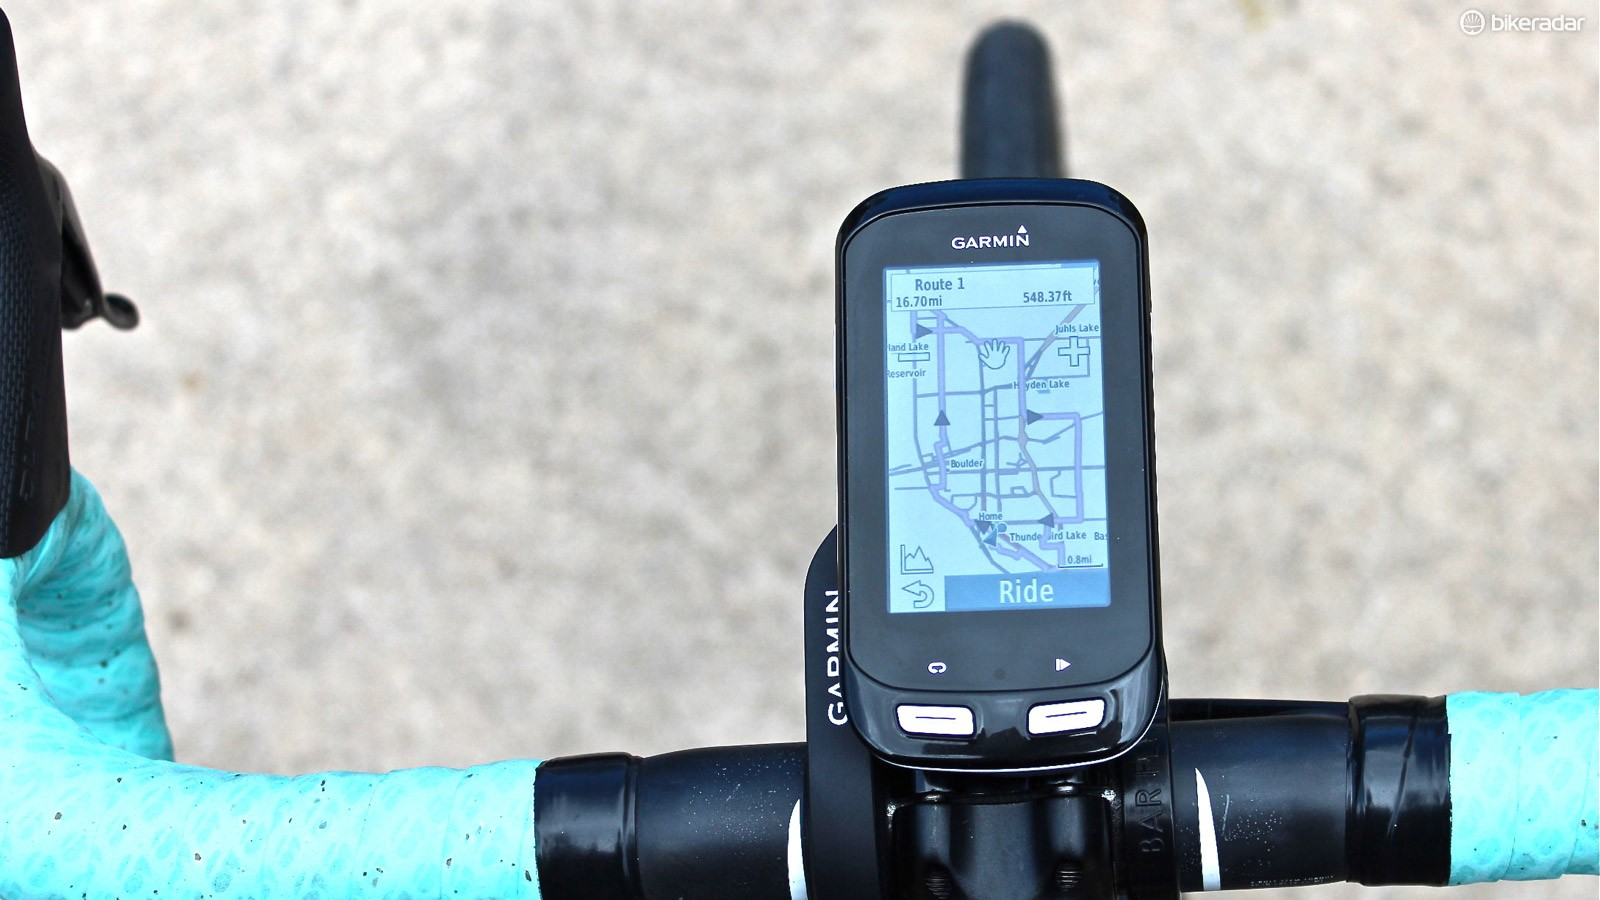 This year's most wanted technology: the Garmin Edge 1000